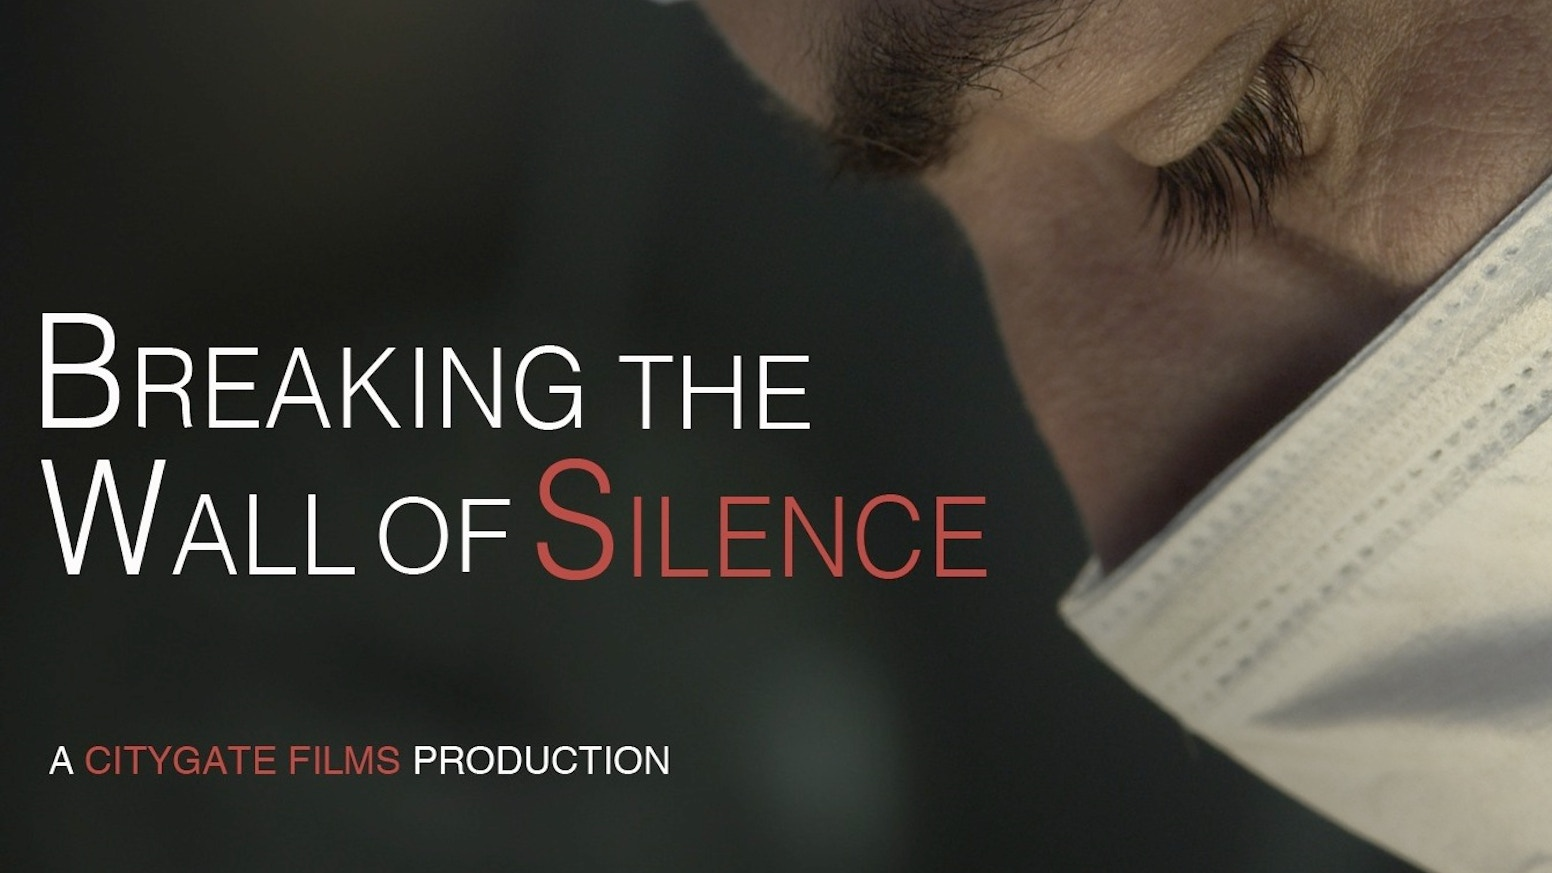 A film about the quest to break through healthcare's wall of silence surrounding medical errors in order to improve patient safety.